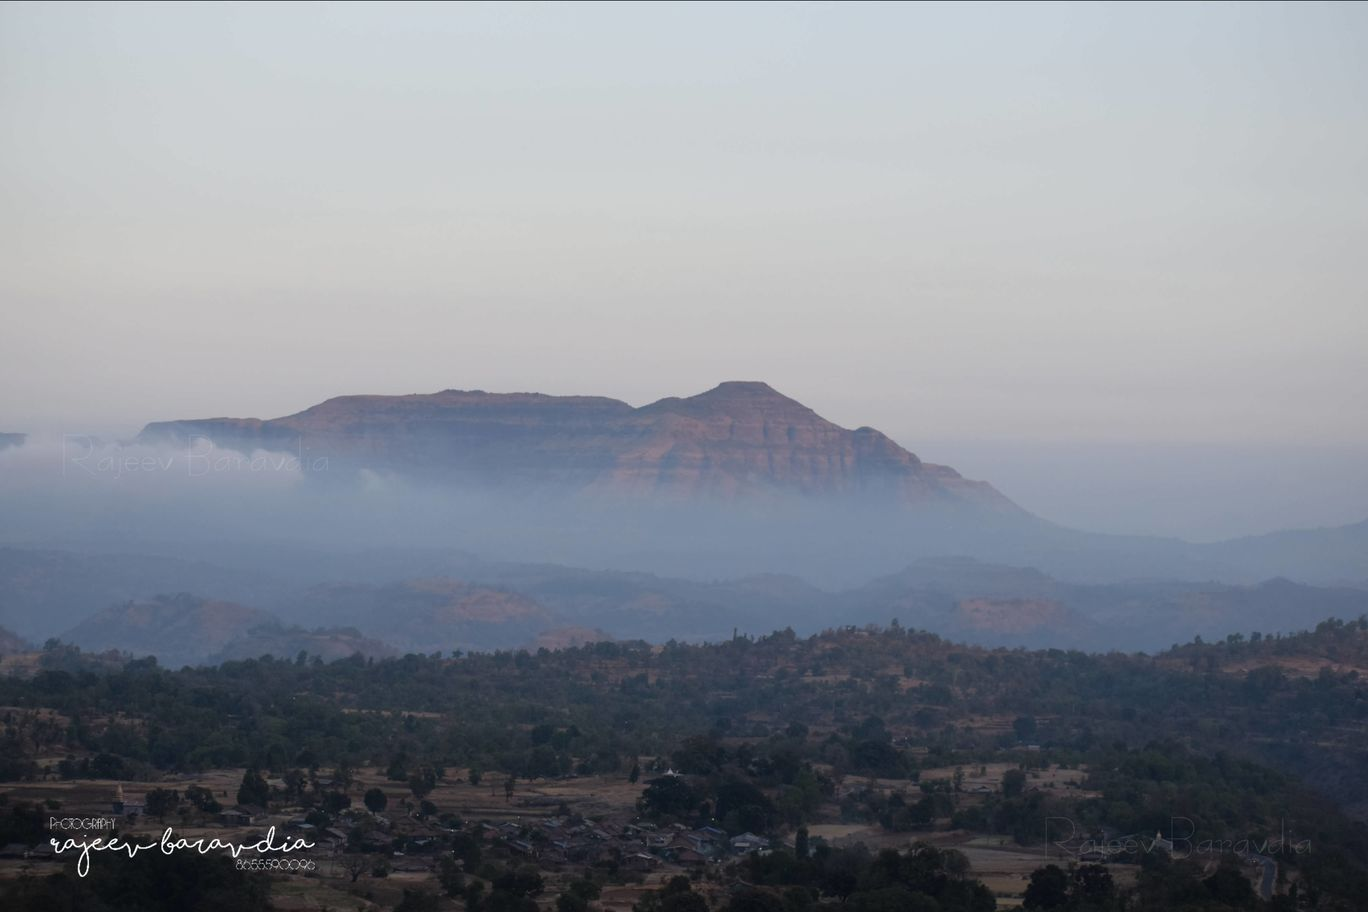 Photo of Fort Kunjargad By Rajeev Baravdia